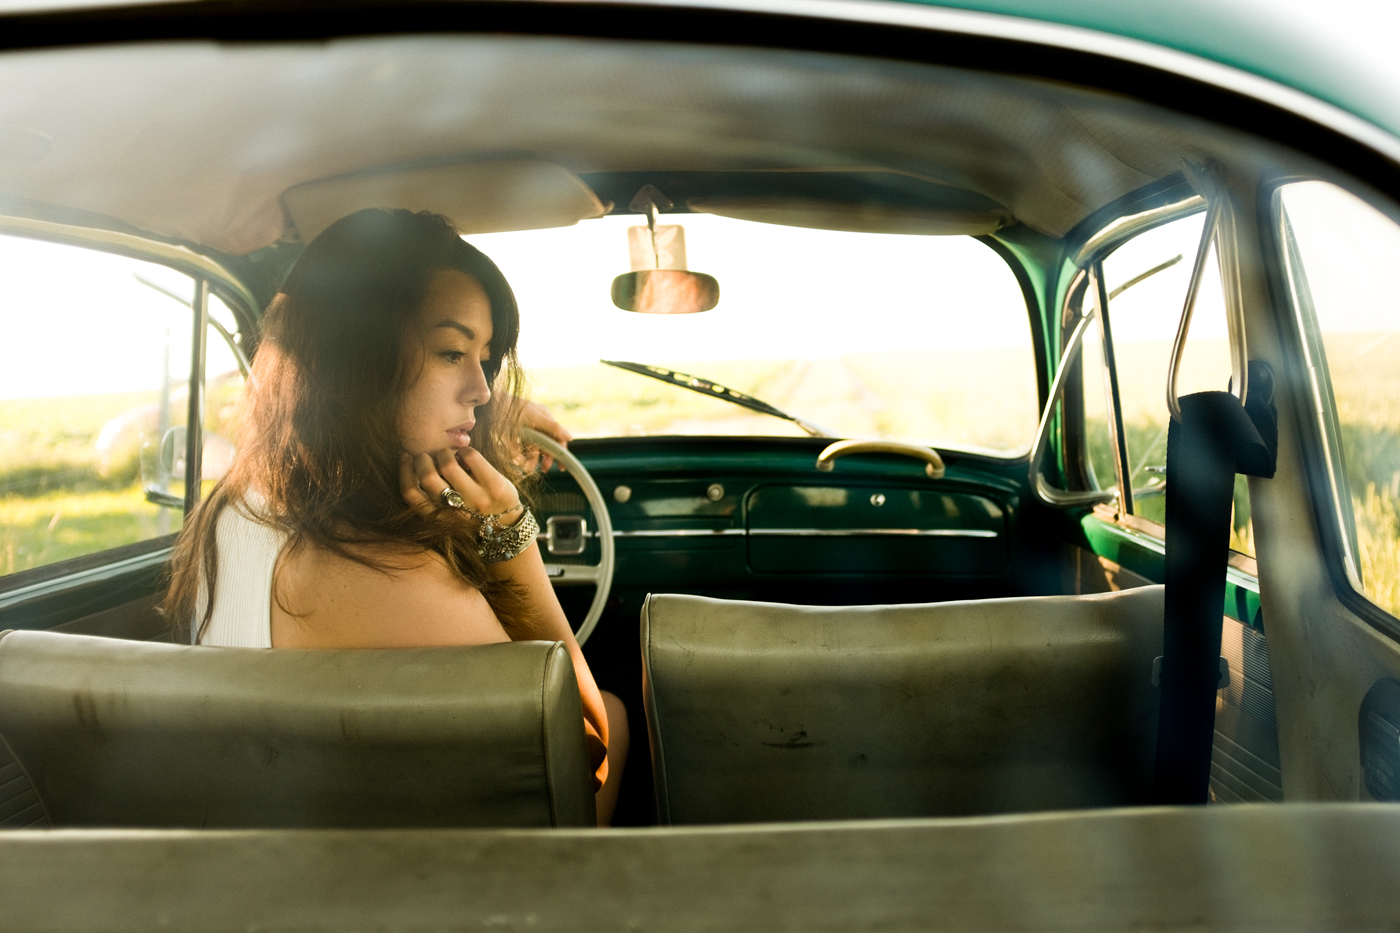 Julia-VW-Oldtimer-Portrait